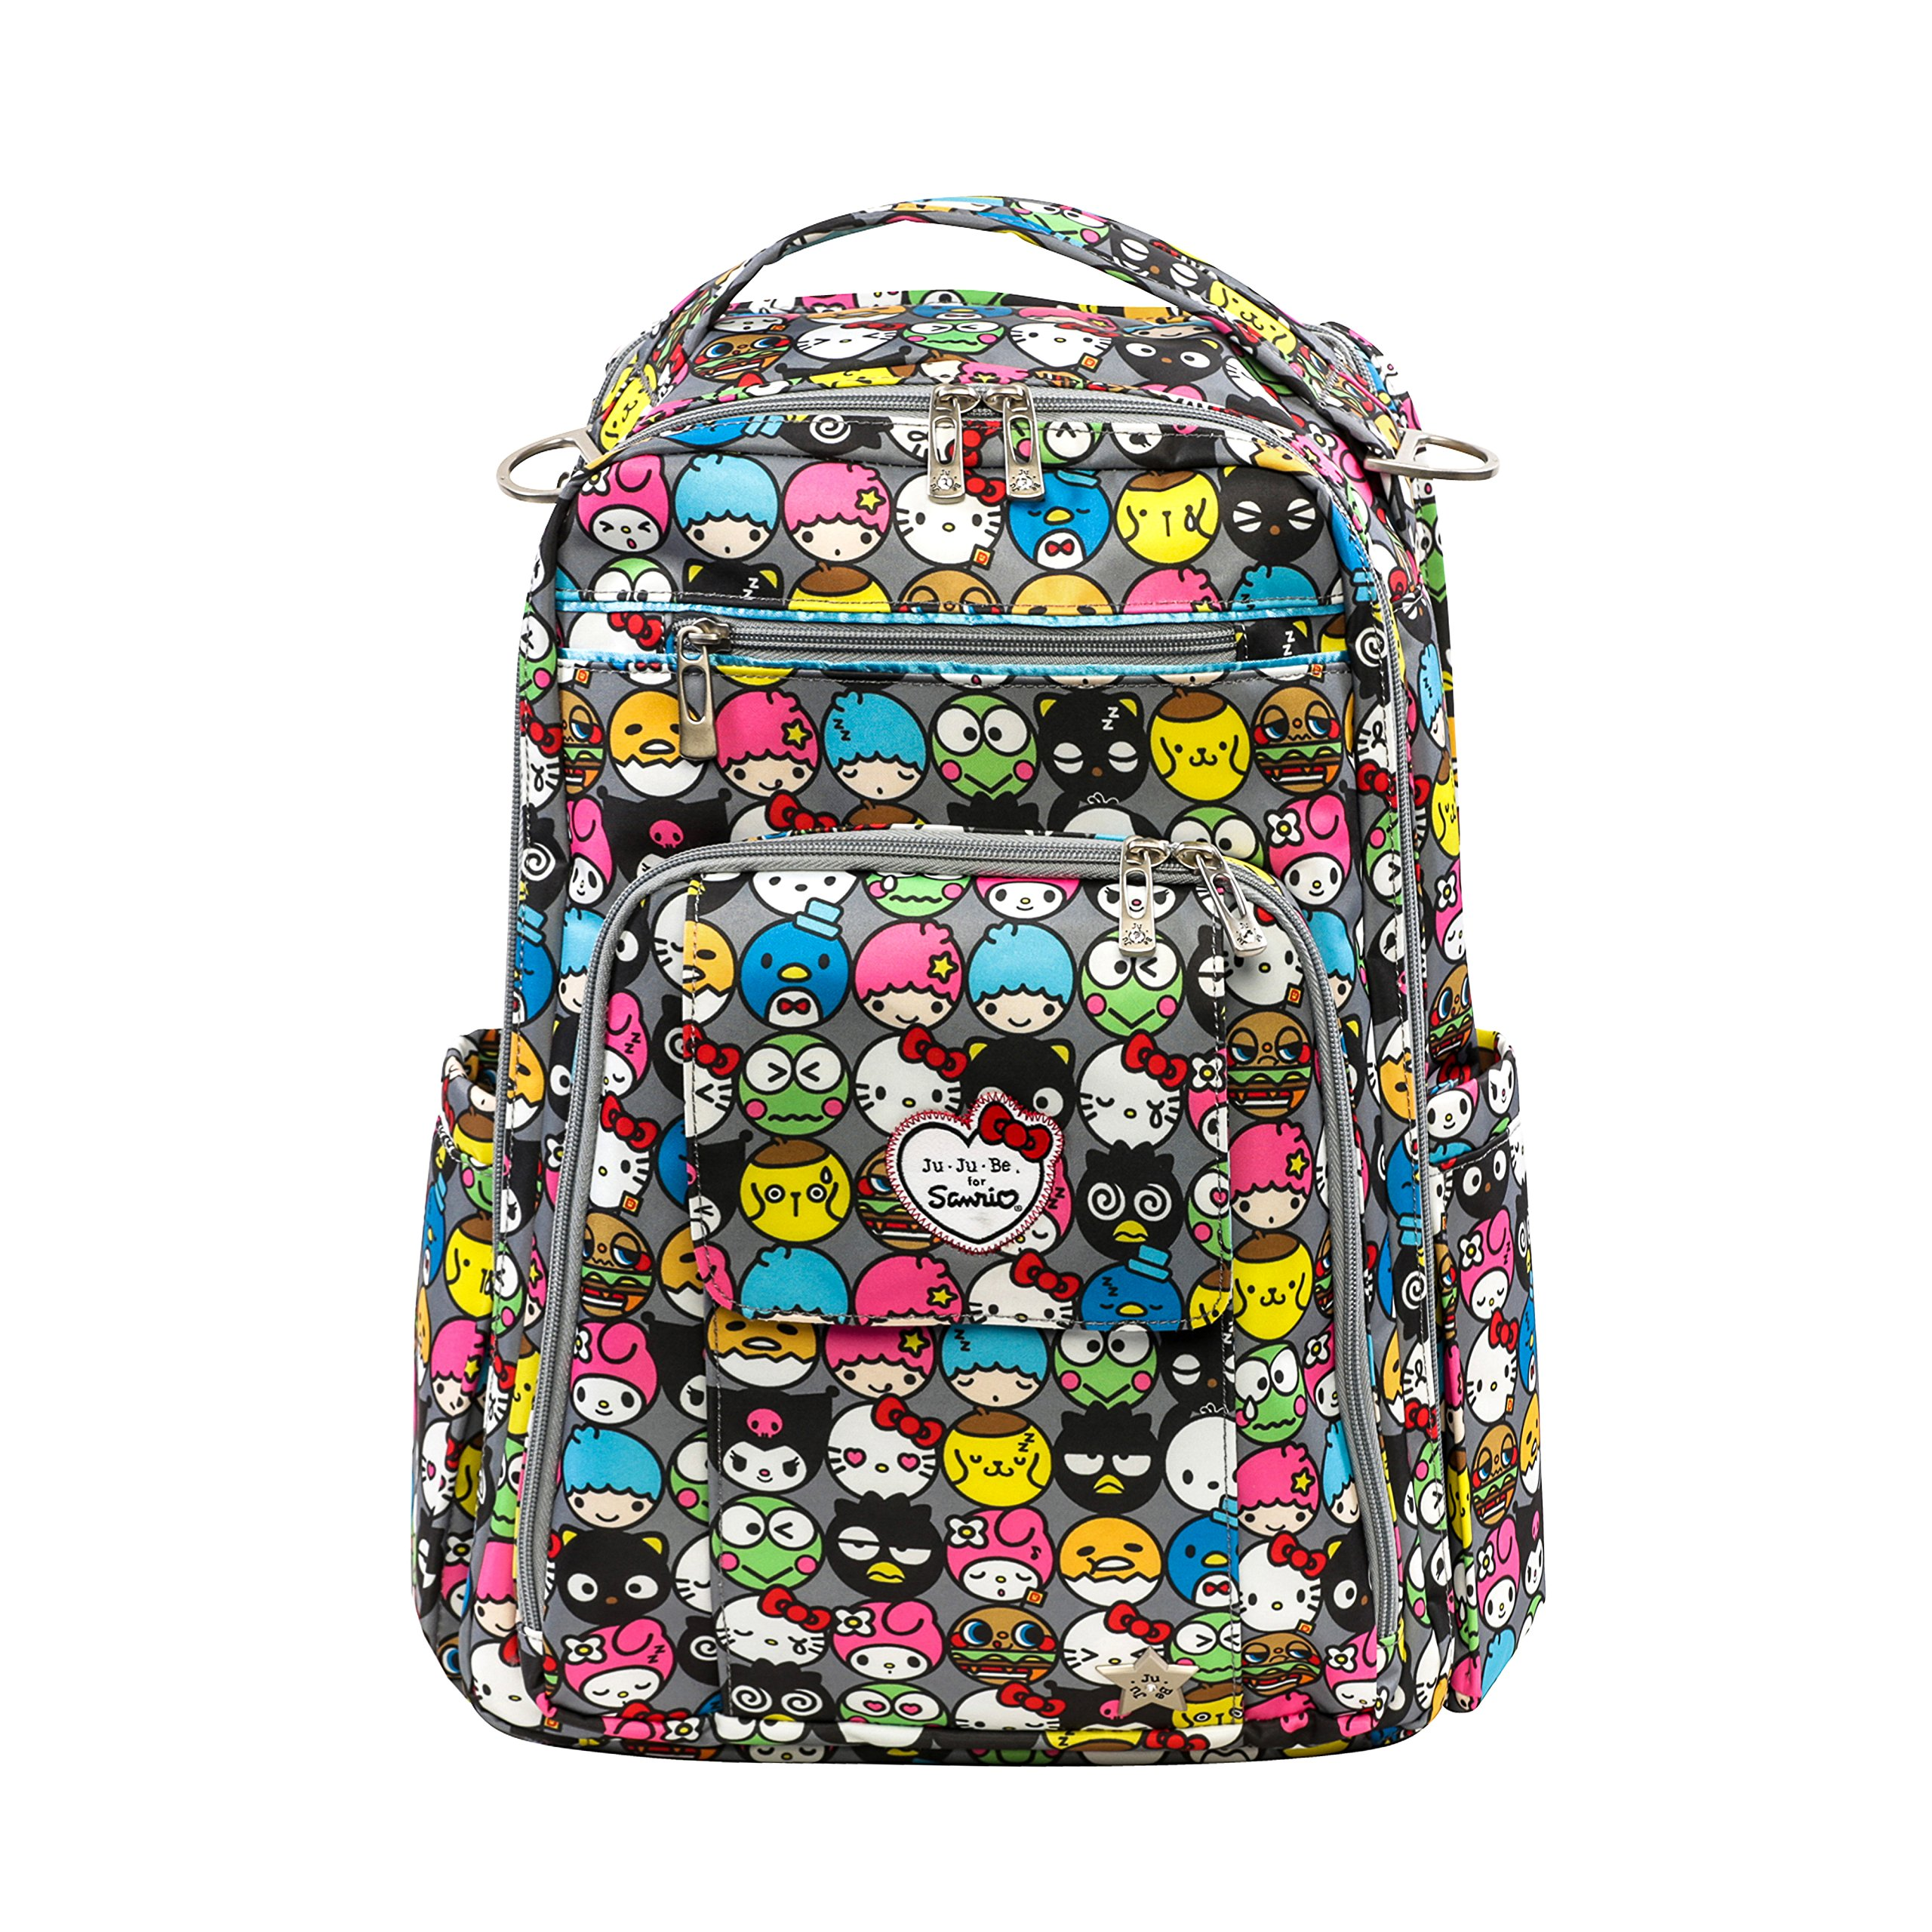 bf52e67c57c Amazon.com   JuJuBe Be Right Back Multi-Functional Structured Backpack Diaper  Bag, Hello Kitty Collection - Hello Friends   Baby